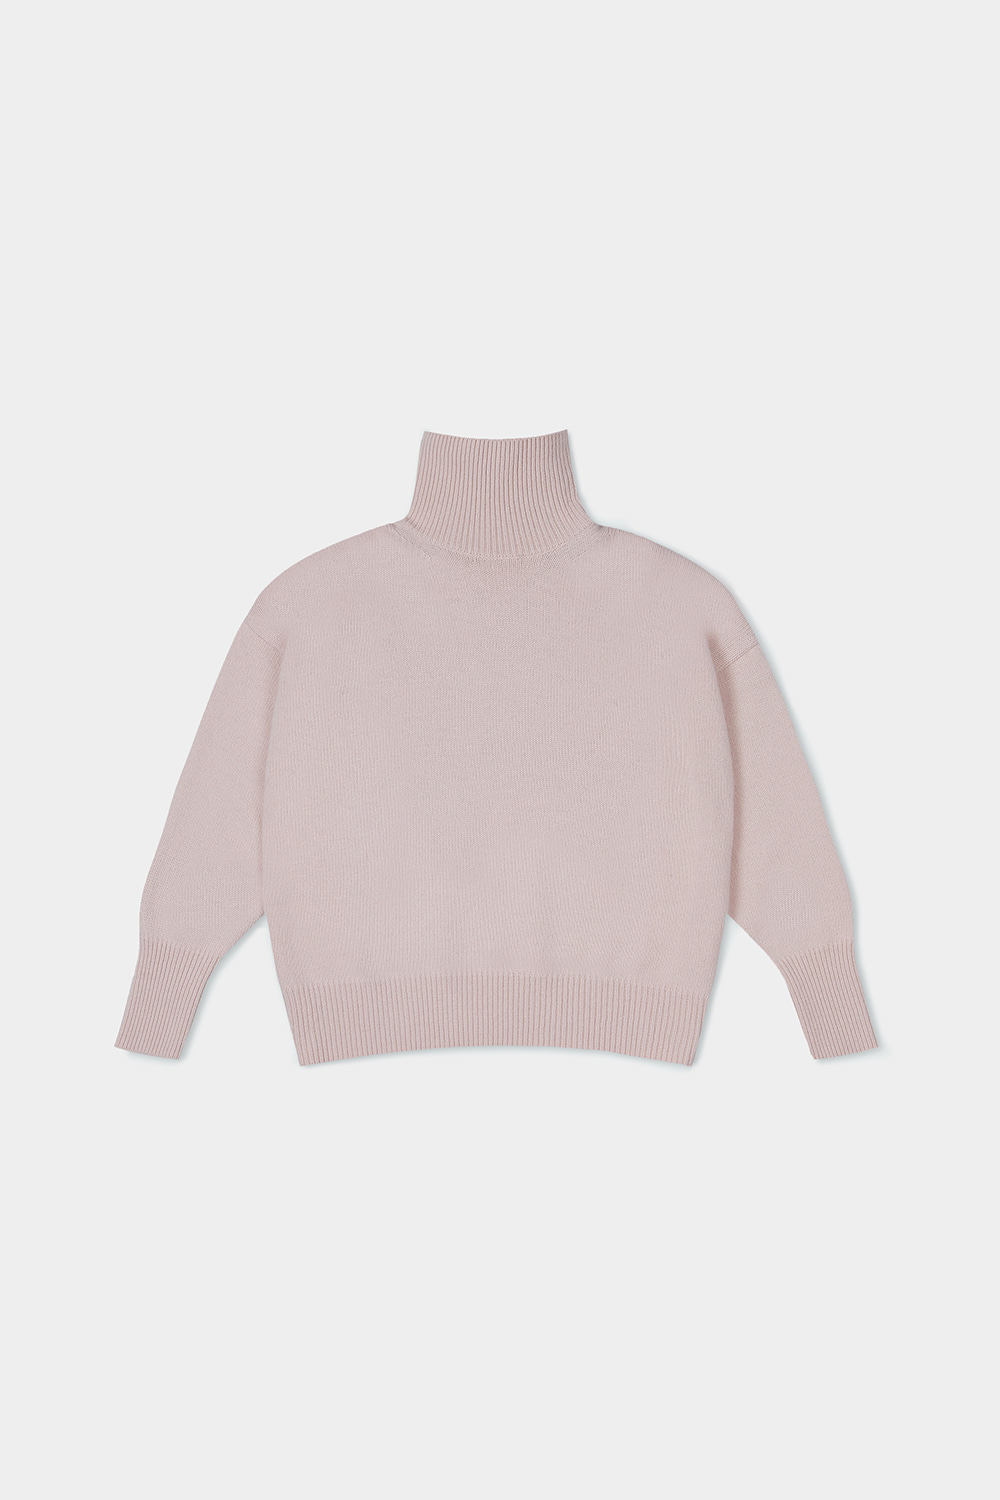 ROLL NECK KNIT (PASTA PINK)